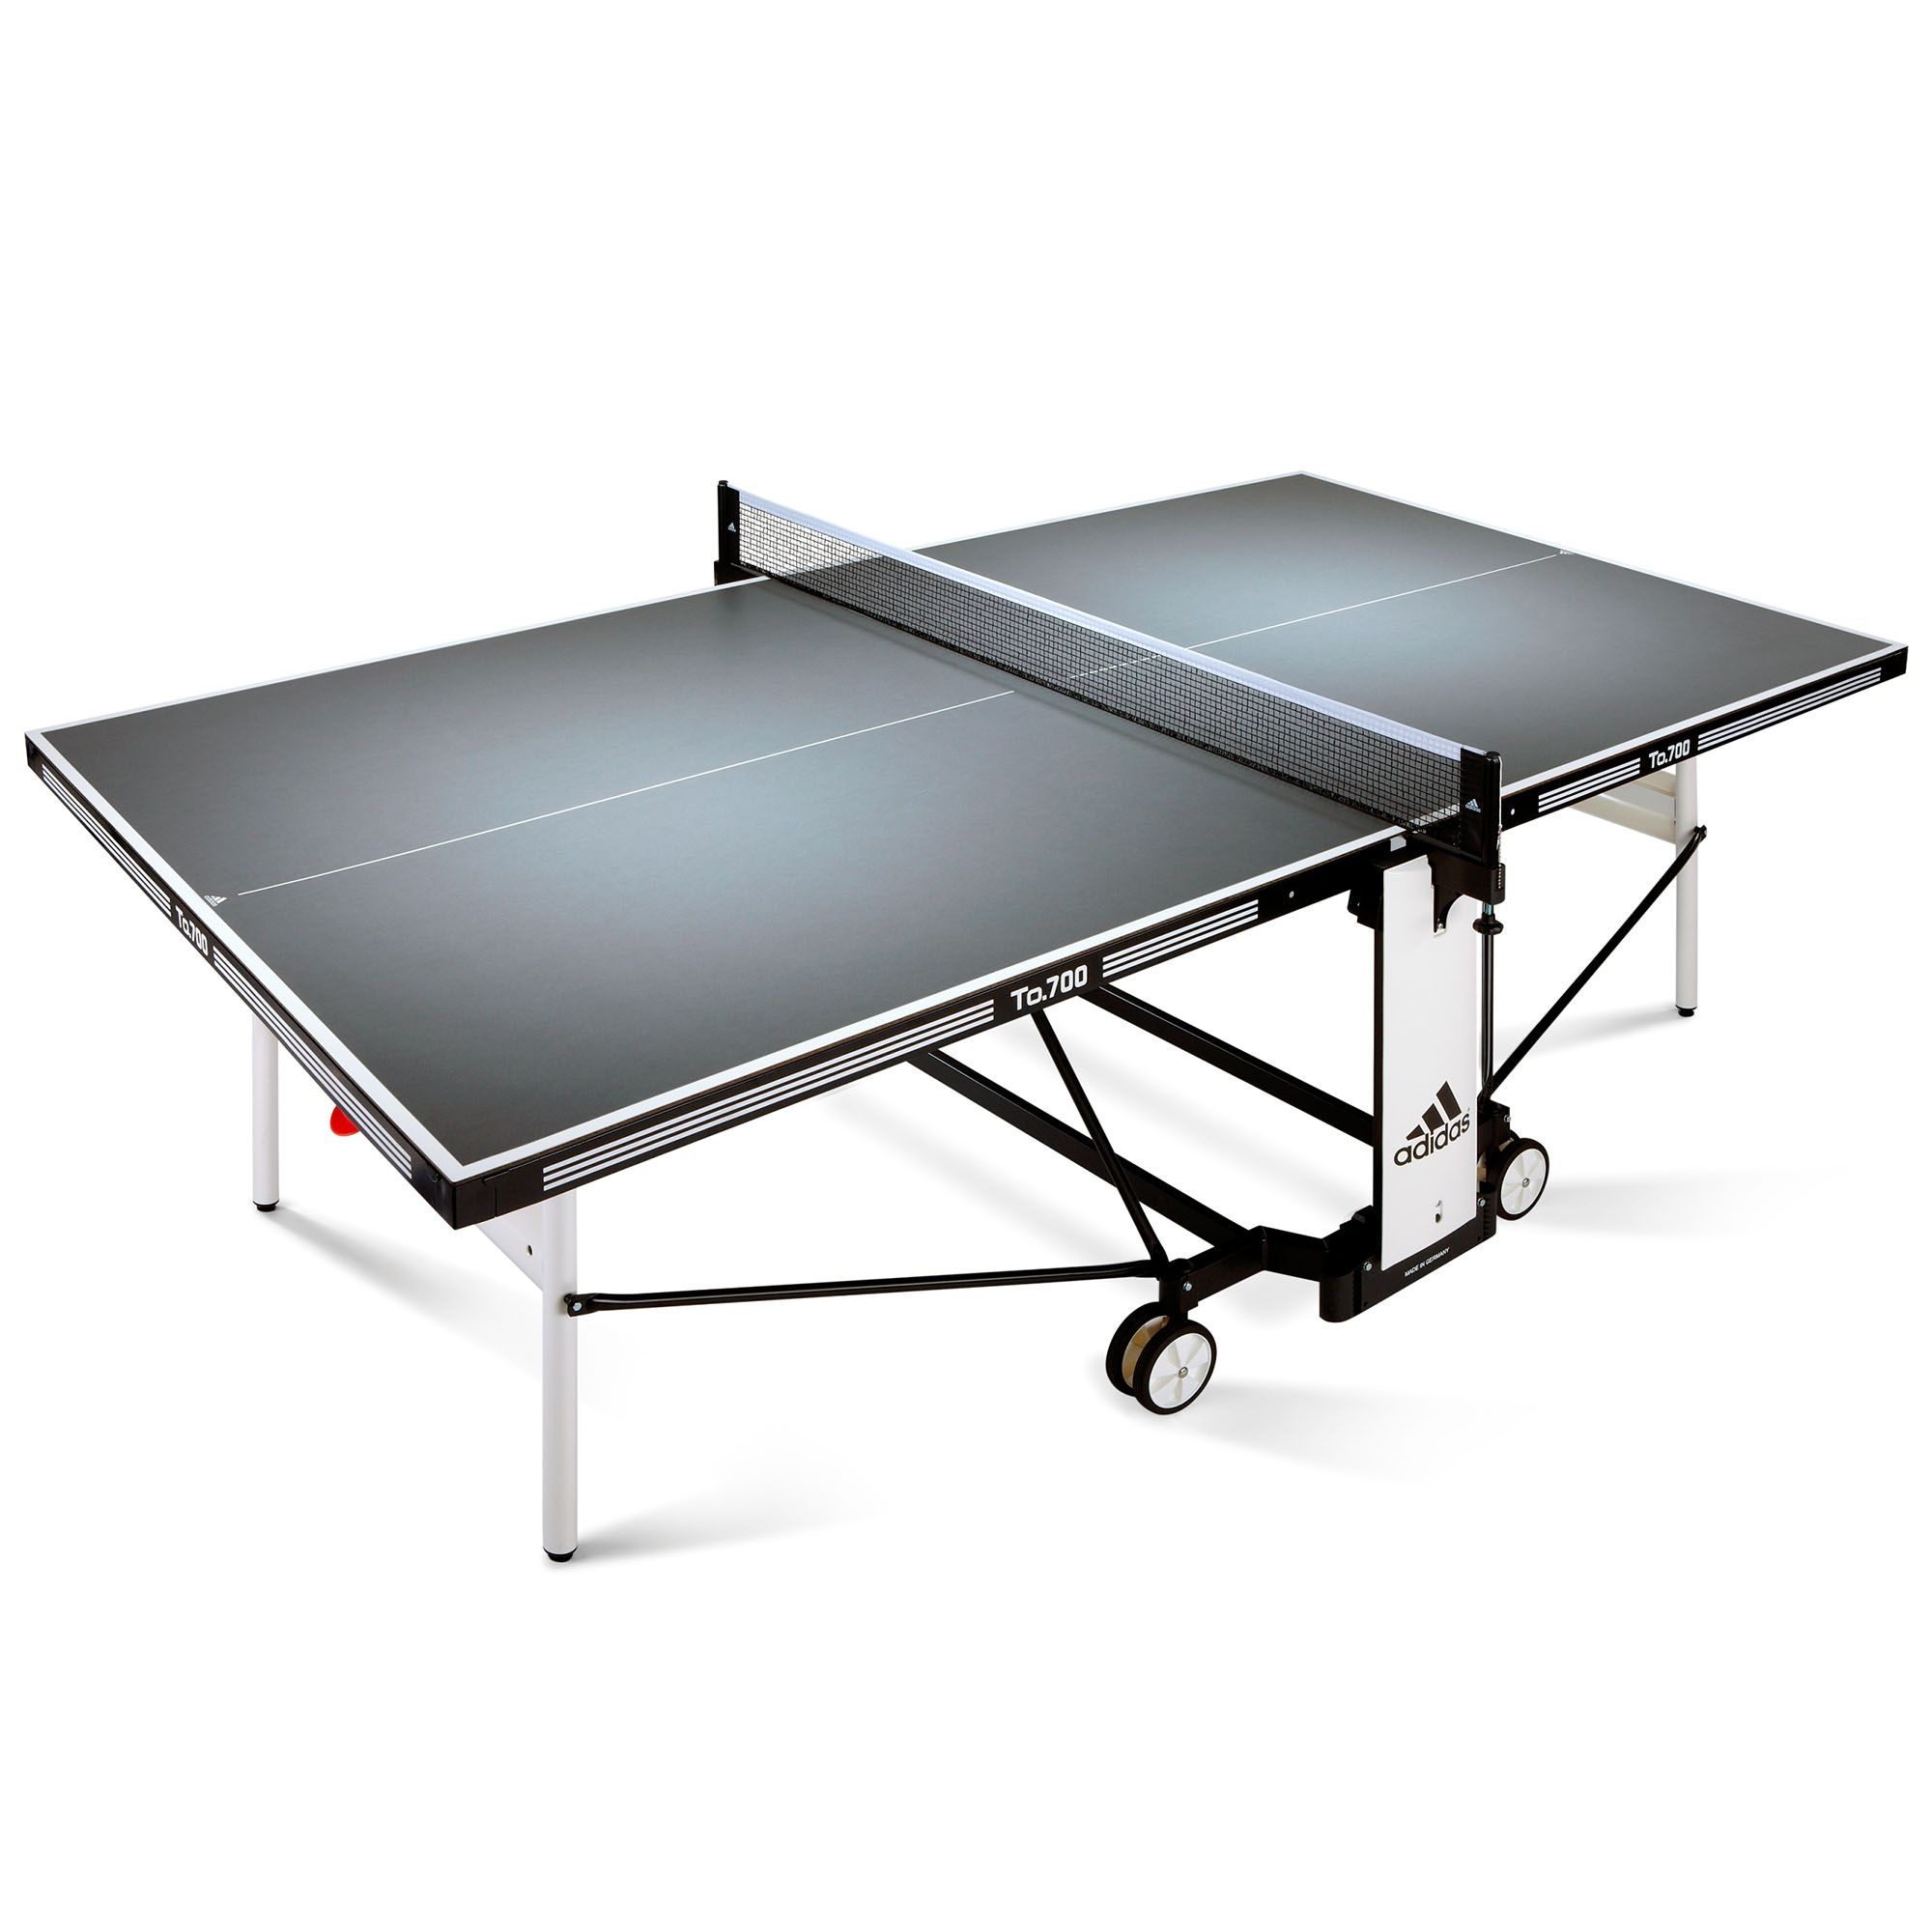 Adidas outdoor table tennis table - Weatherproof table tennis table ...